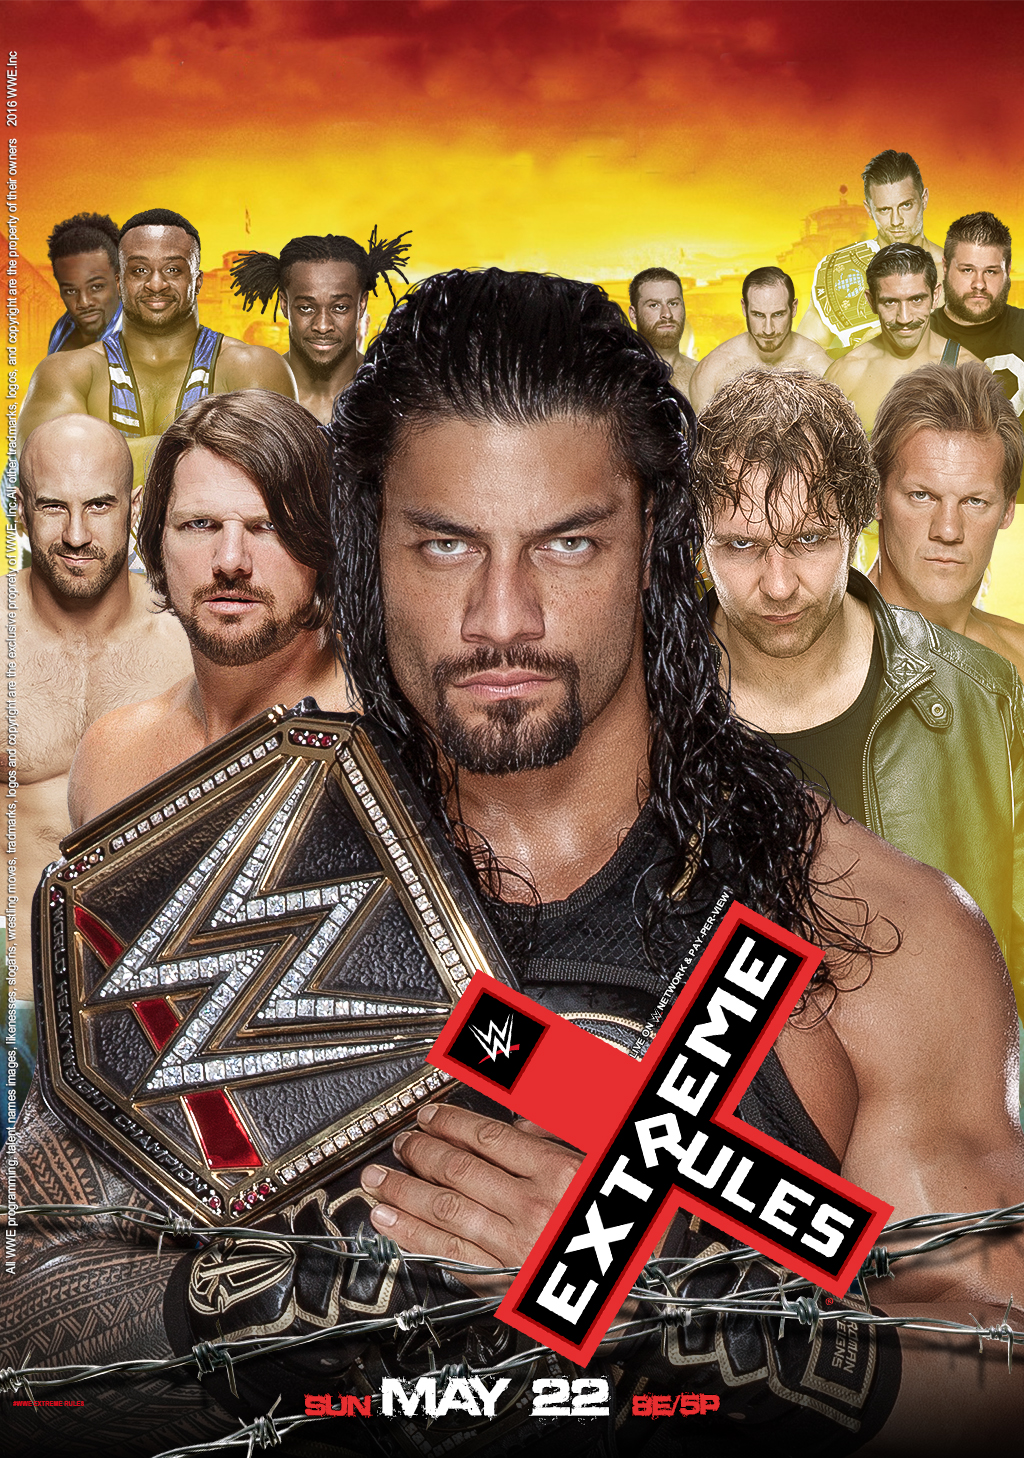 WWE Extreme Rules 2016 Poster by edaba7 on DeviantArt